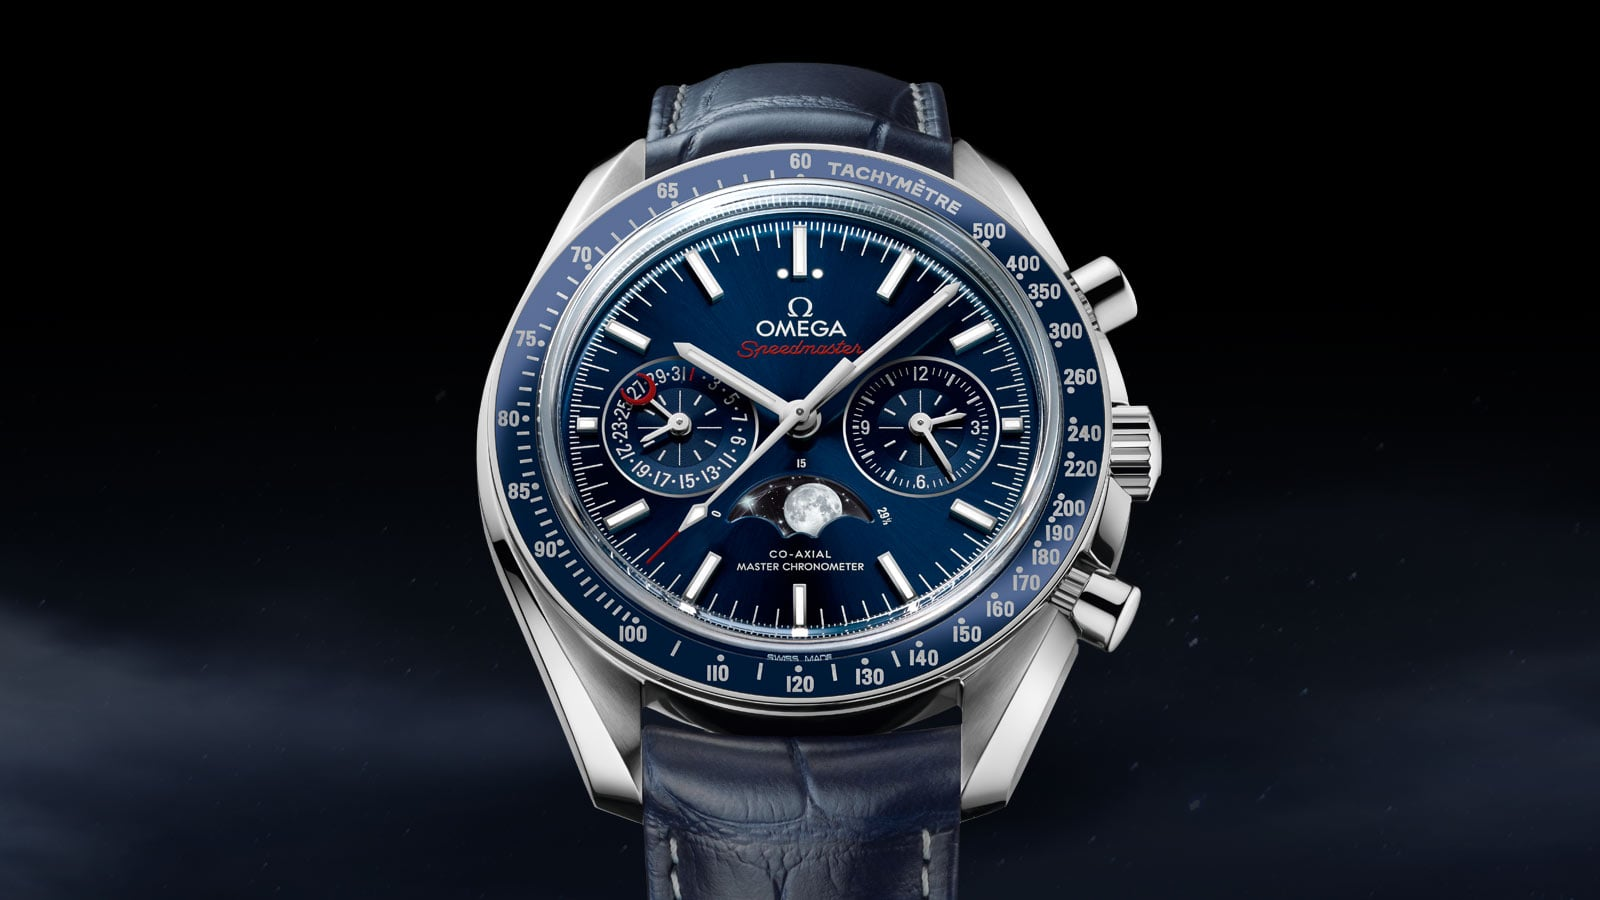 Close-up view of the Omega MOONWATCH MOONPHASE with blue sun-brushed dial and blue leather strap